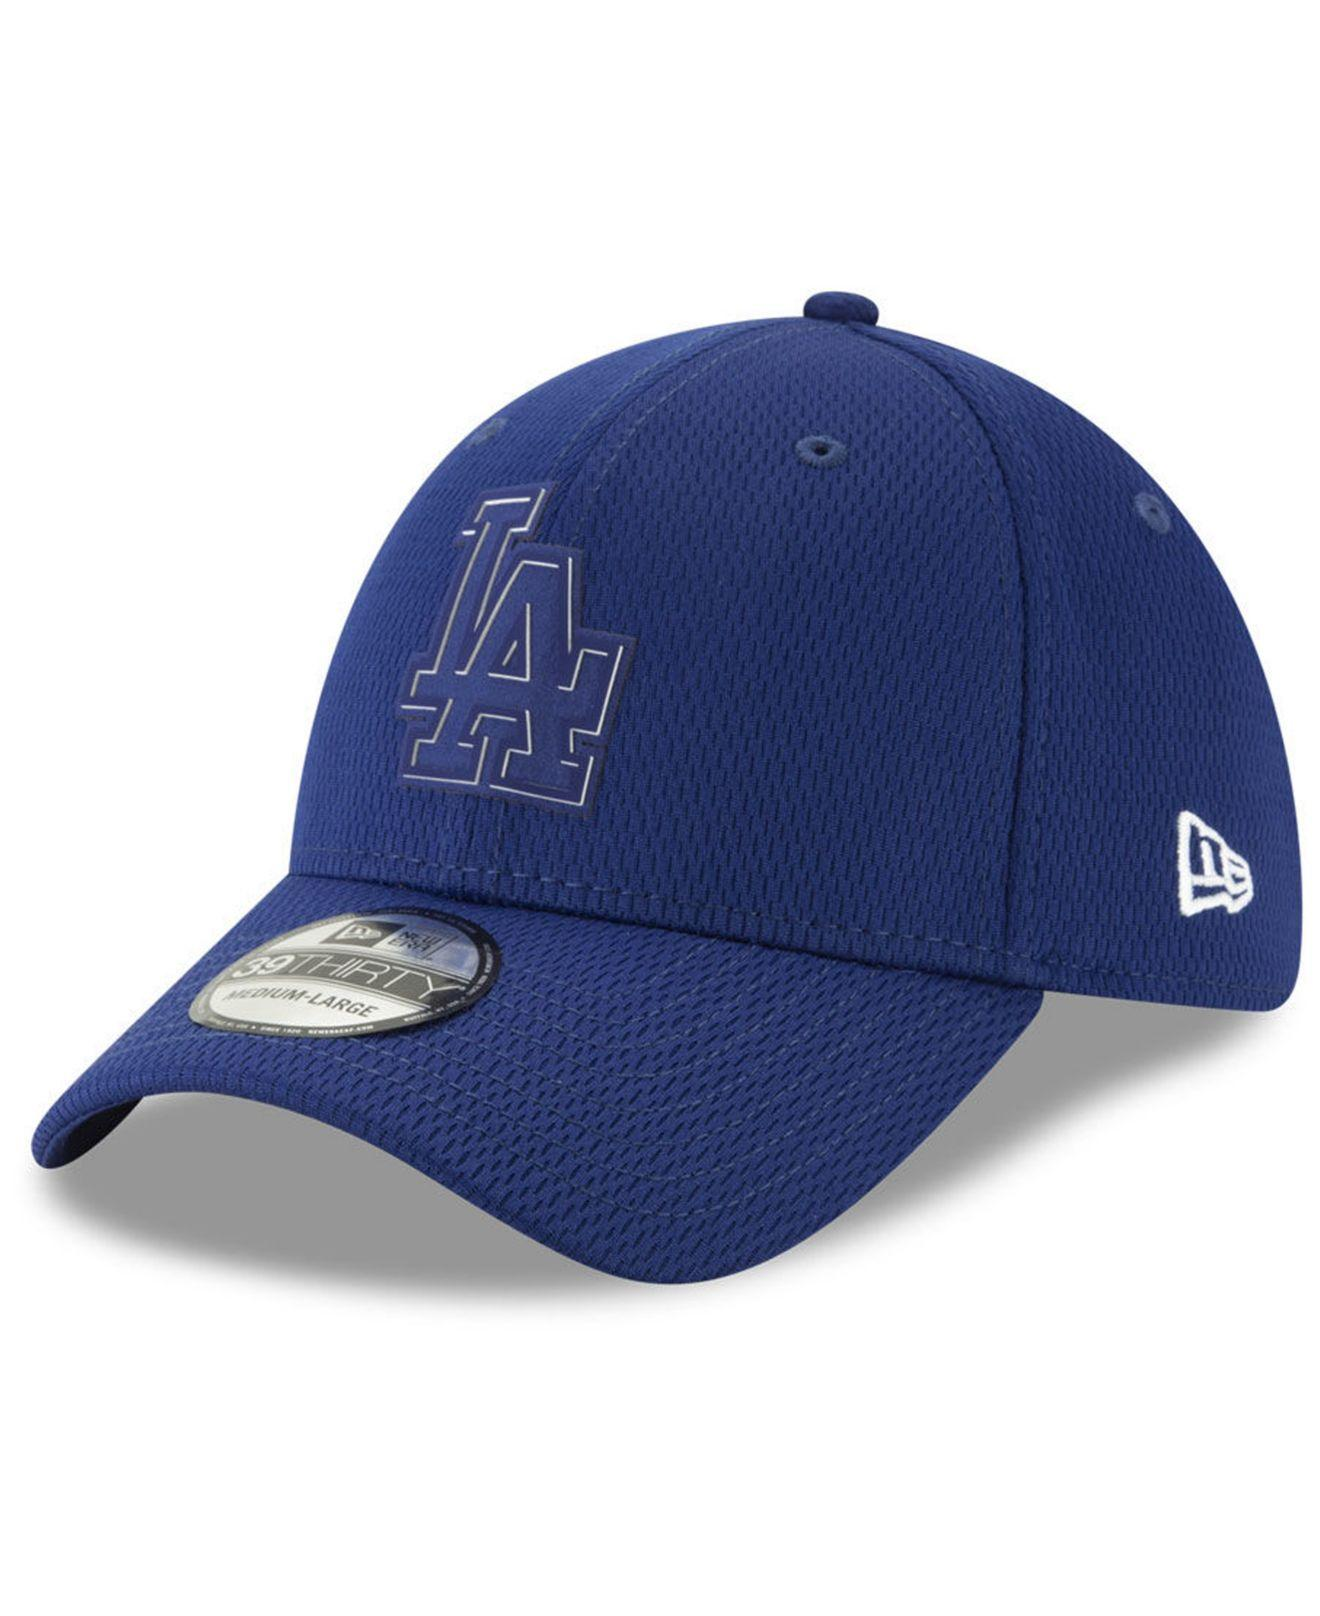 sale retailer 6611e 23905 ... Los Angeles Dodgers Clubhouse 39thirty Cap for Men - Lyst. View  fullscreen